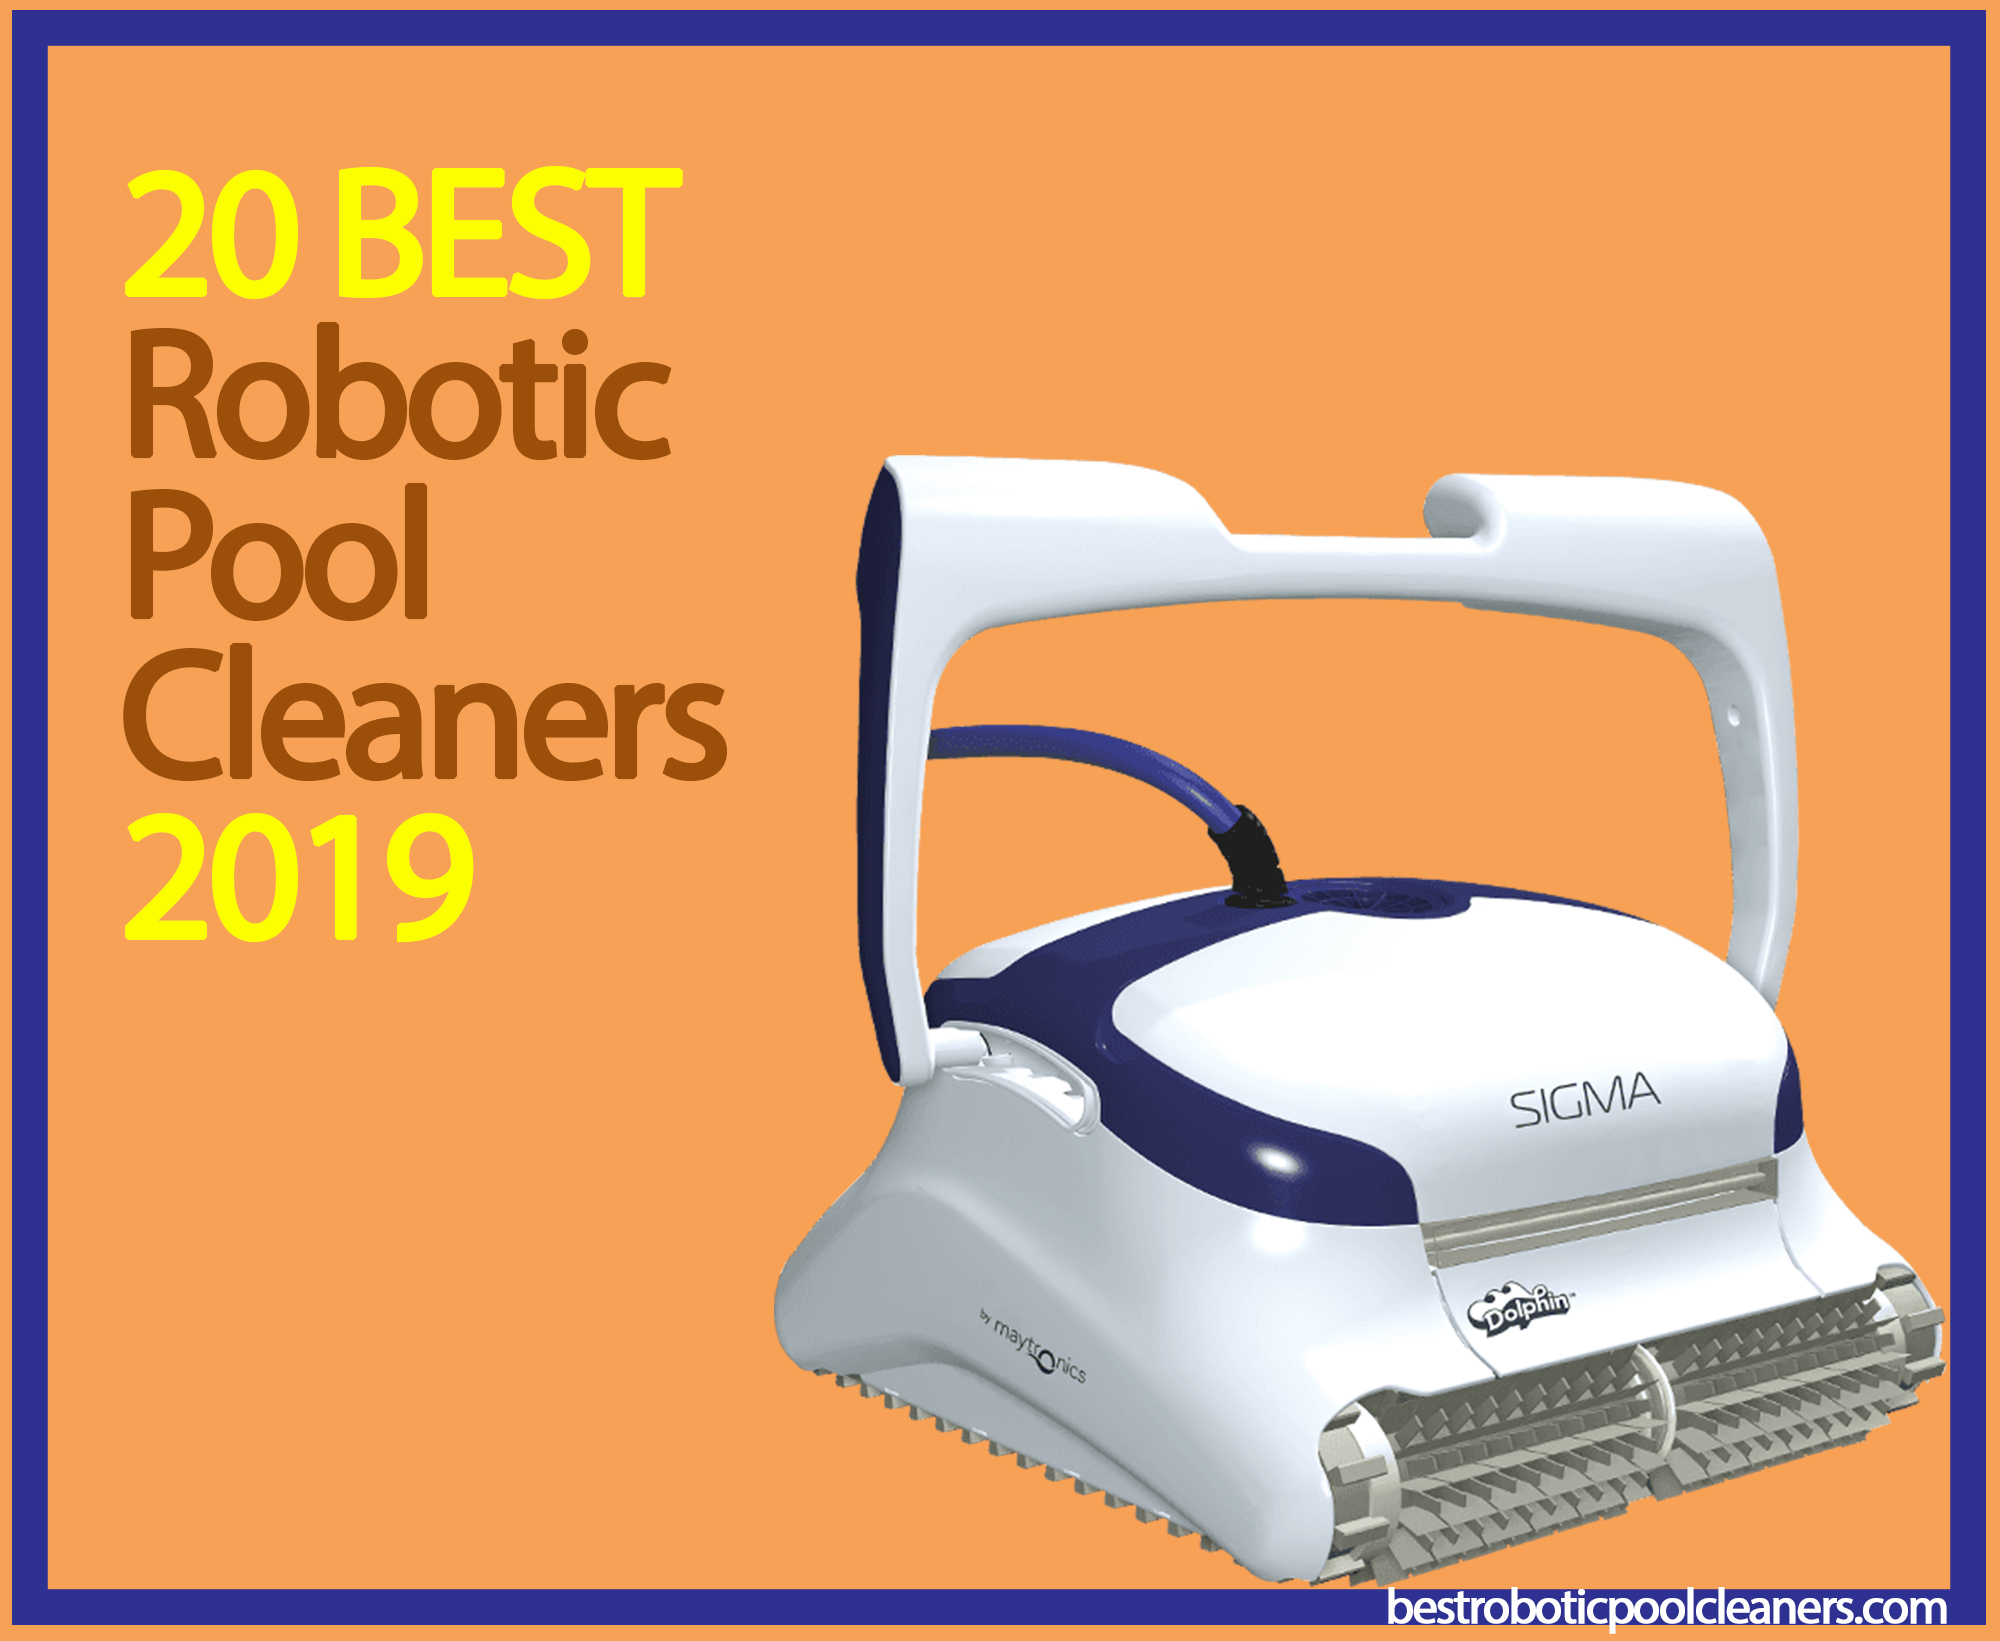 20 Best Robotic Pool Cleaners For 2019 Best Robotic Pool